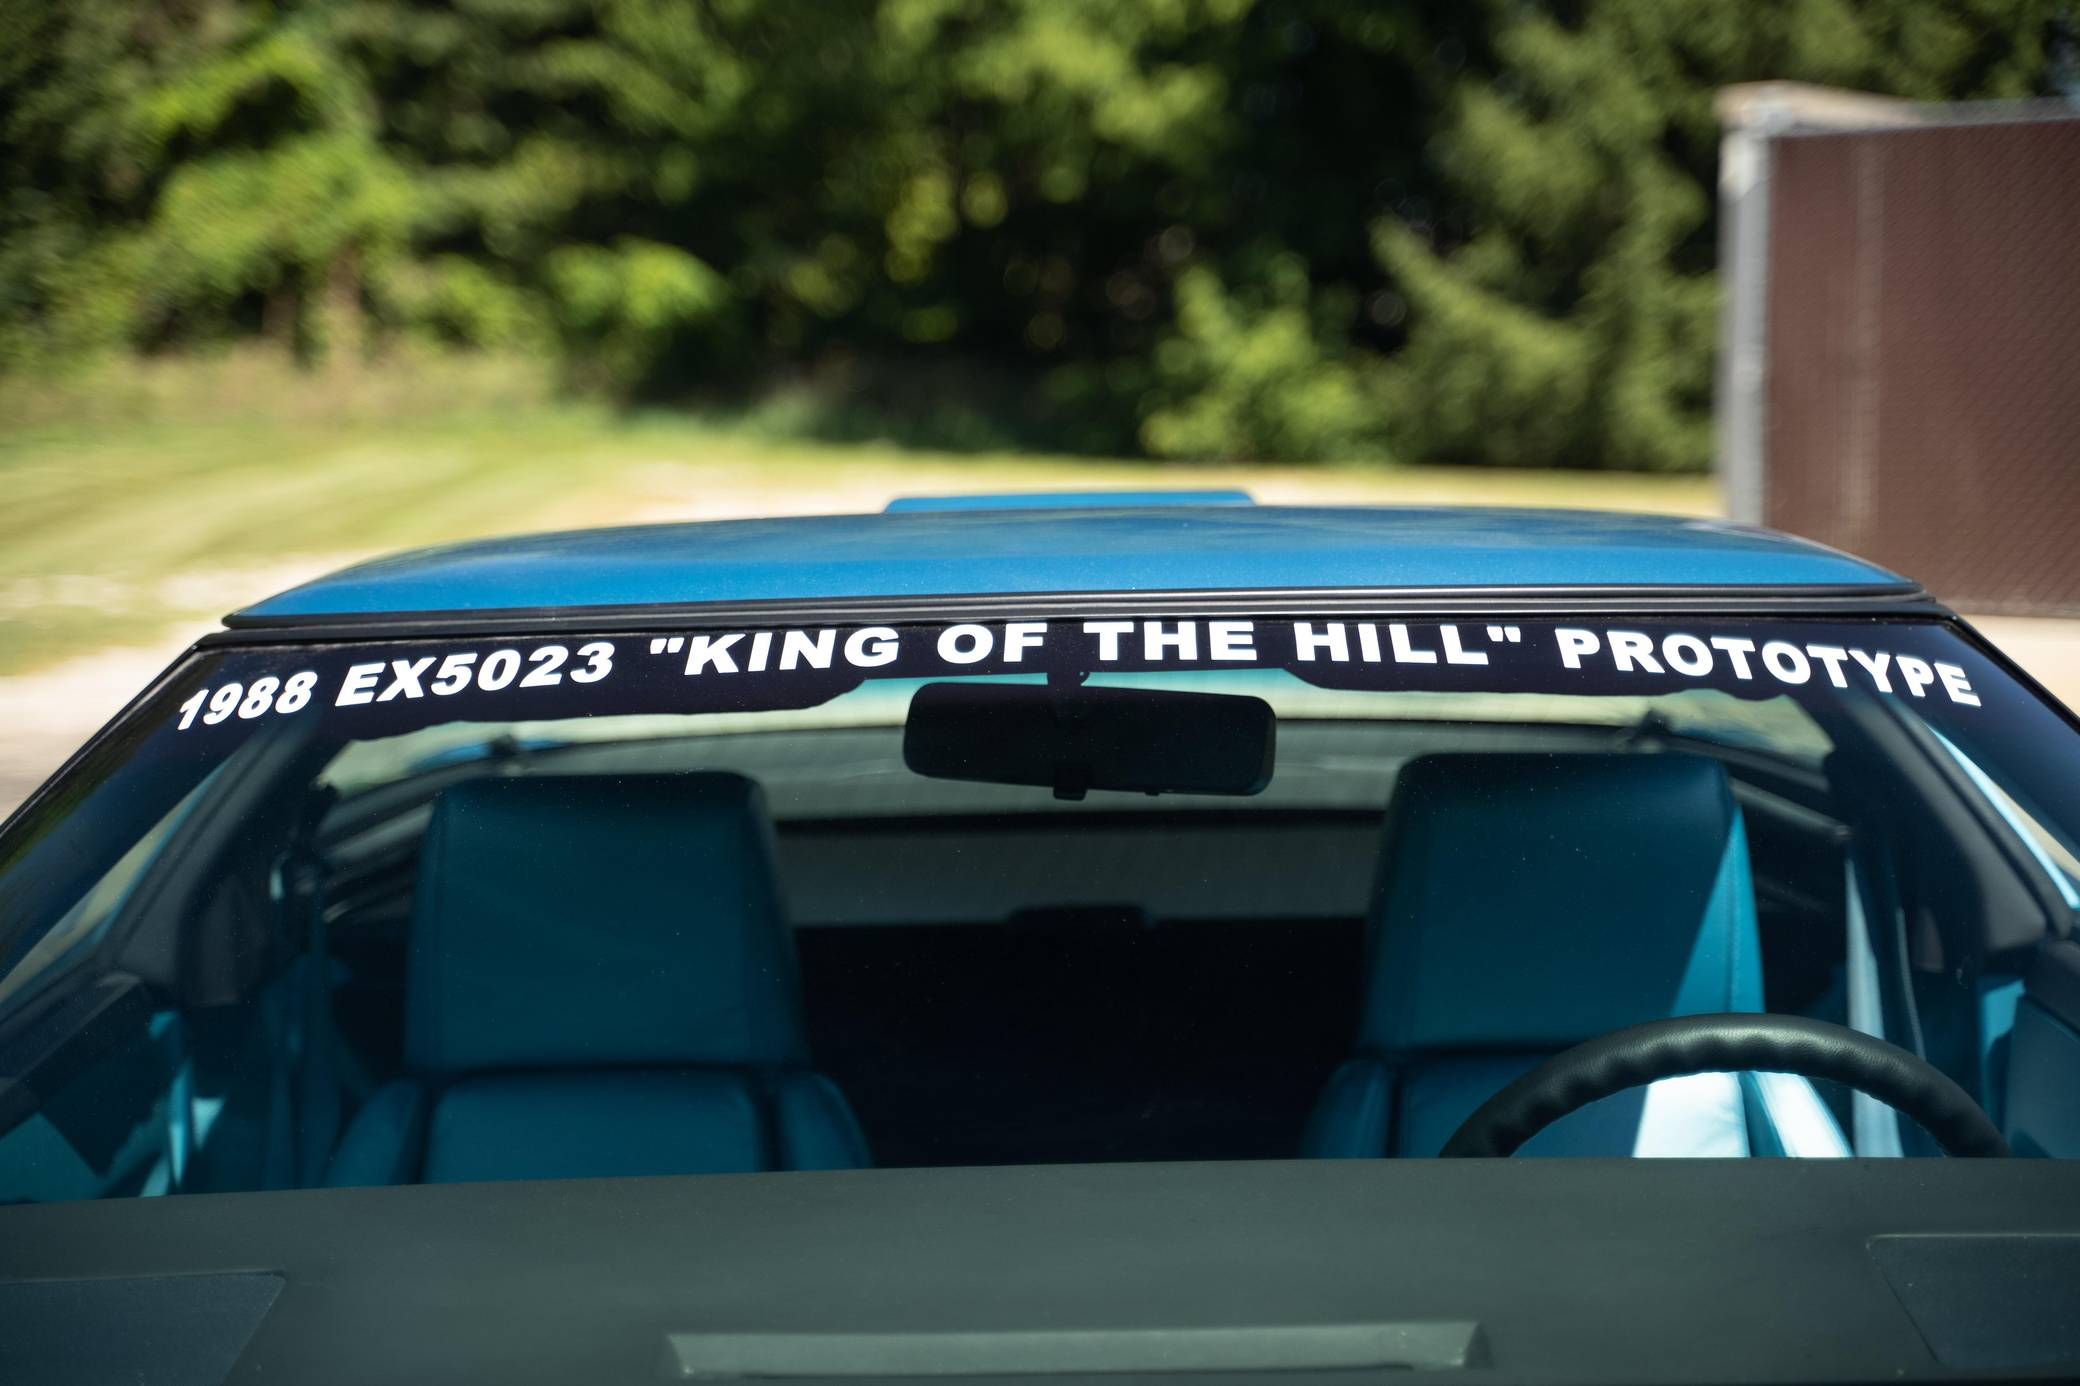 Chevy Vette King of the Hill Prototype lettering